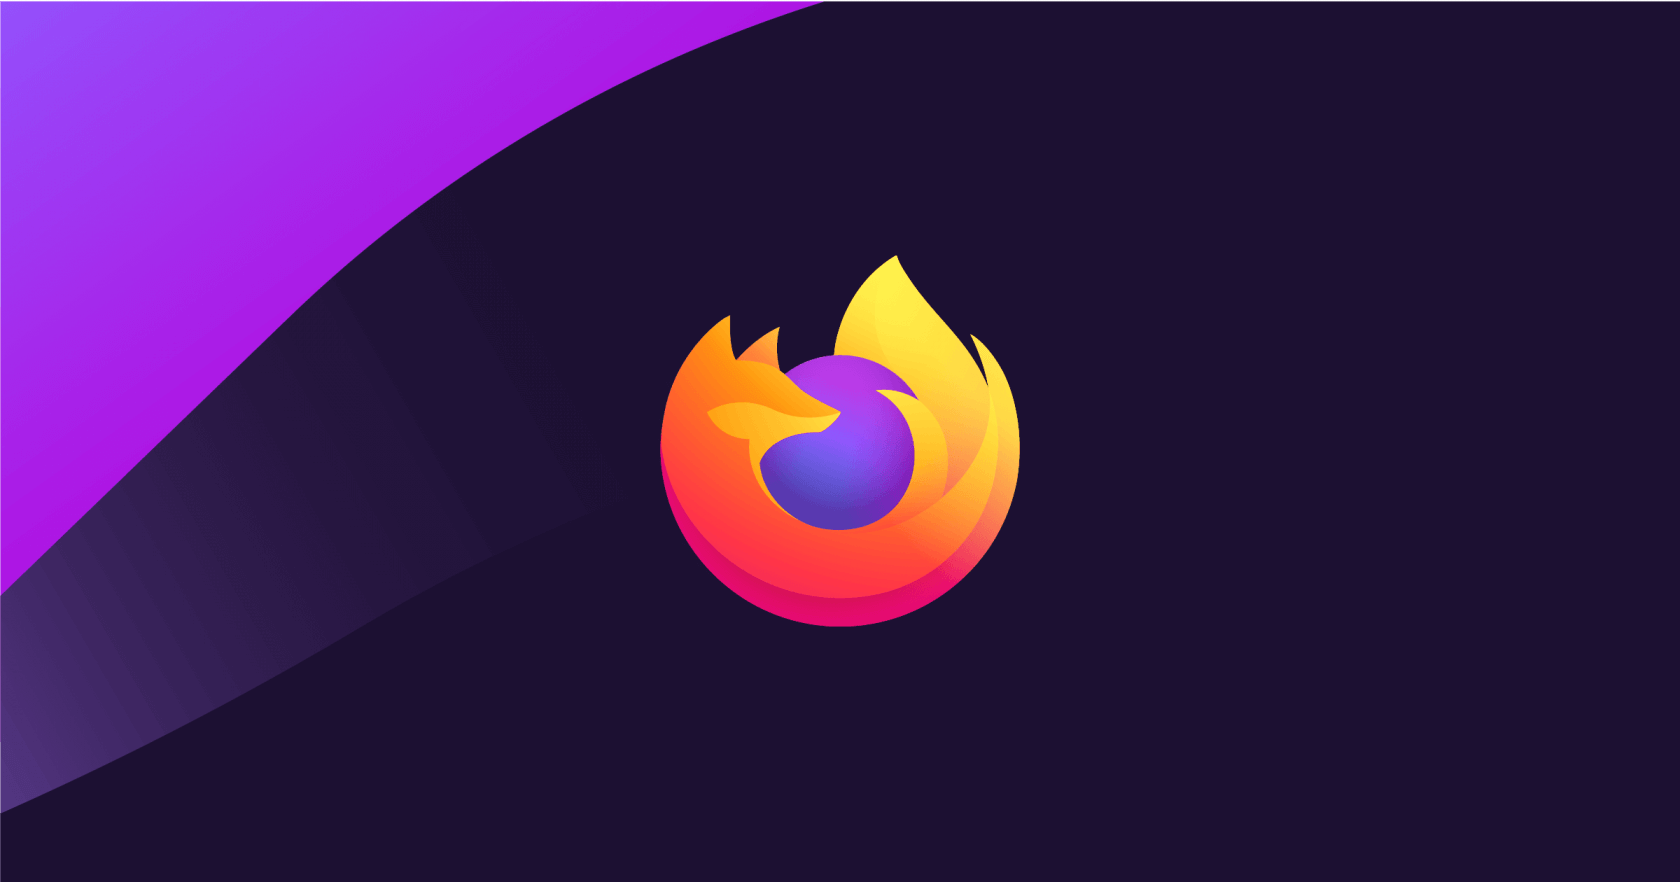 Mozilla begins rolling out DNS encryption by default for Firefox users